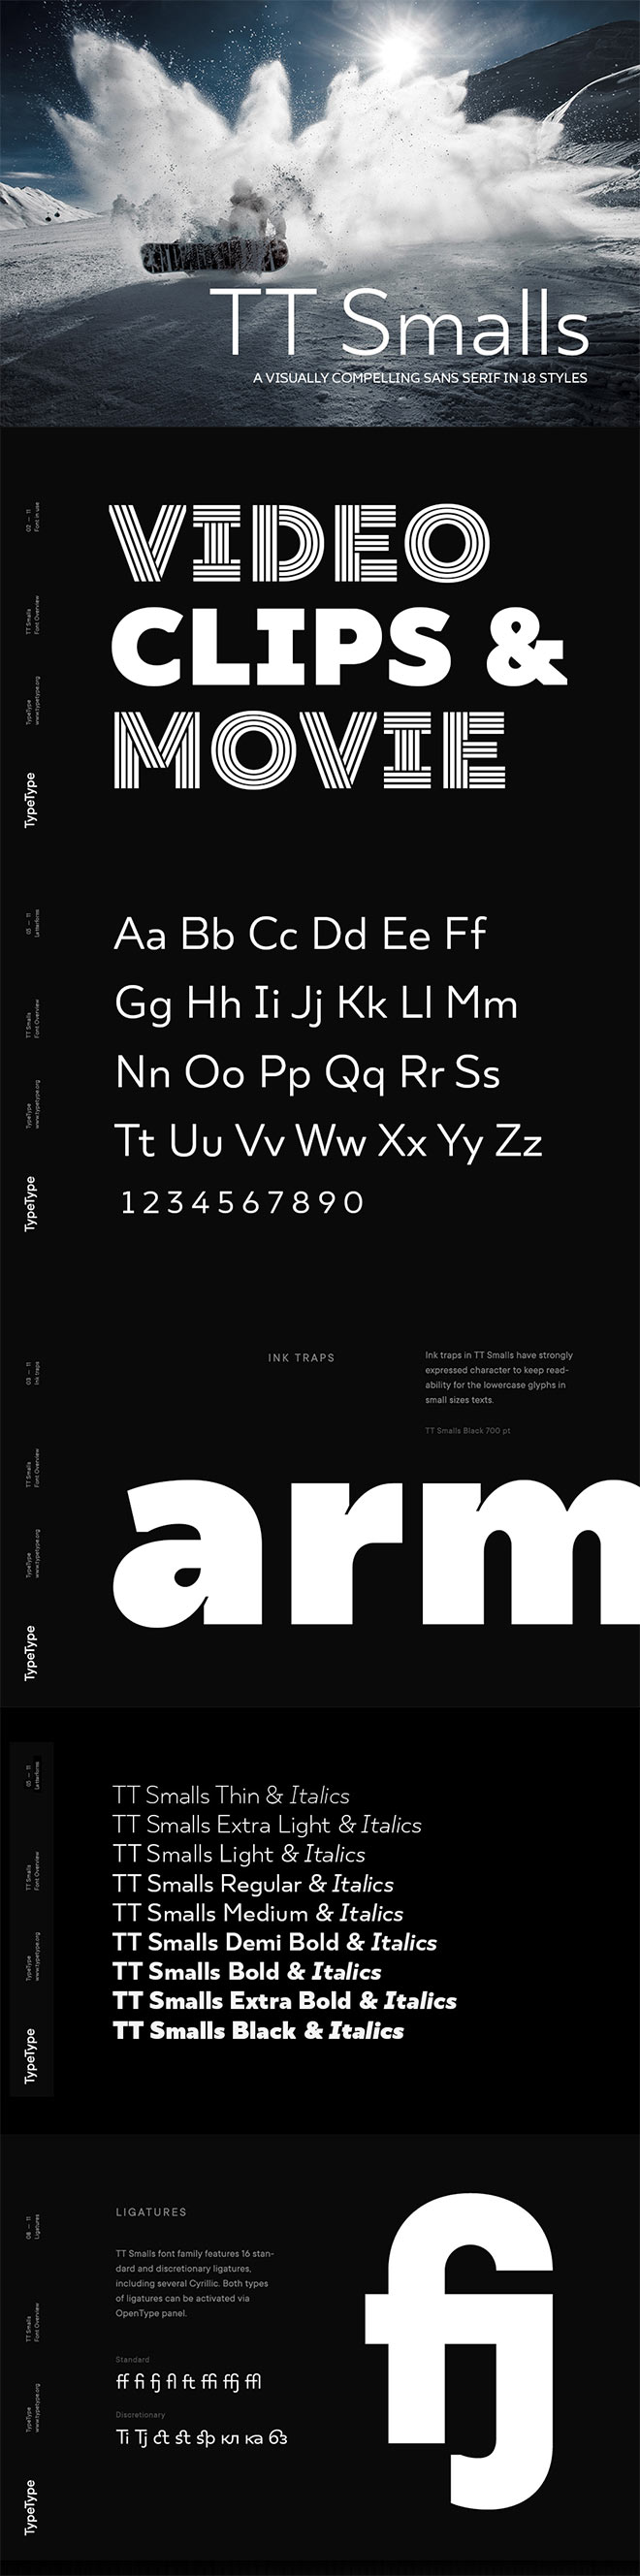 Eurostile, Clarendon and Other Essential Fonts for 99% Off